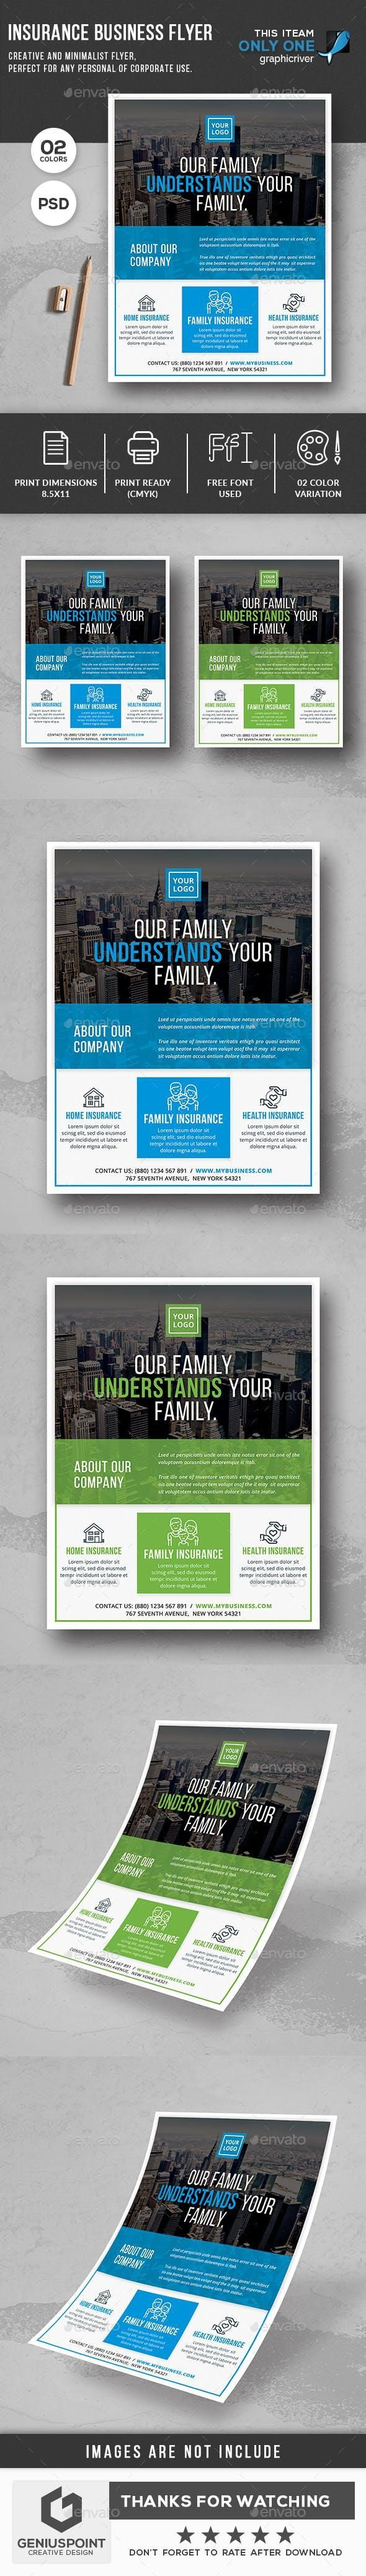 Insurance Business Flyer | Business flyer, Business ...